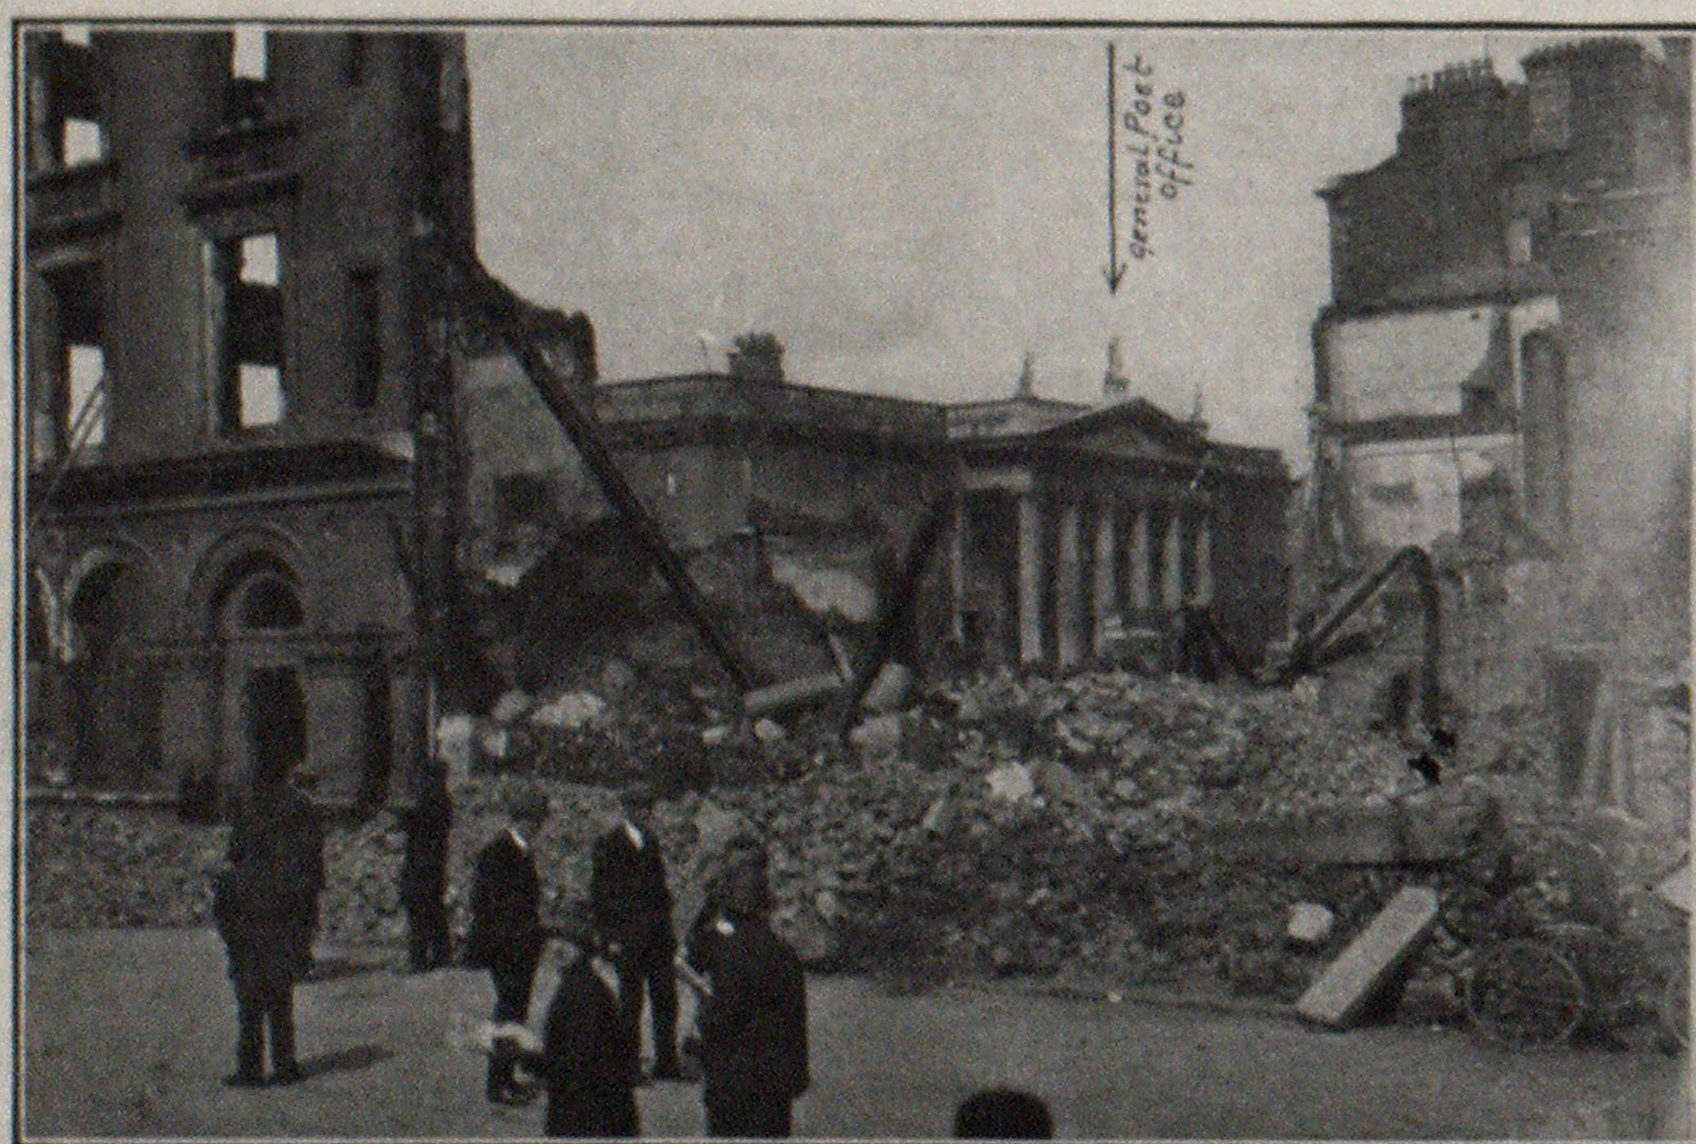 Ruins of General Post and Telegraph Office, Sackville Street, Dublin, Shelled With Mortars by Military Through Roof. GraniteFaced Walls Thirty Inches Thick Were Undamaged, But Building Was Gutted.